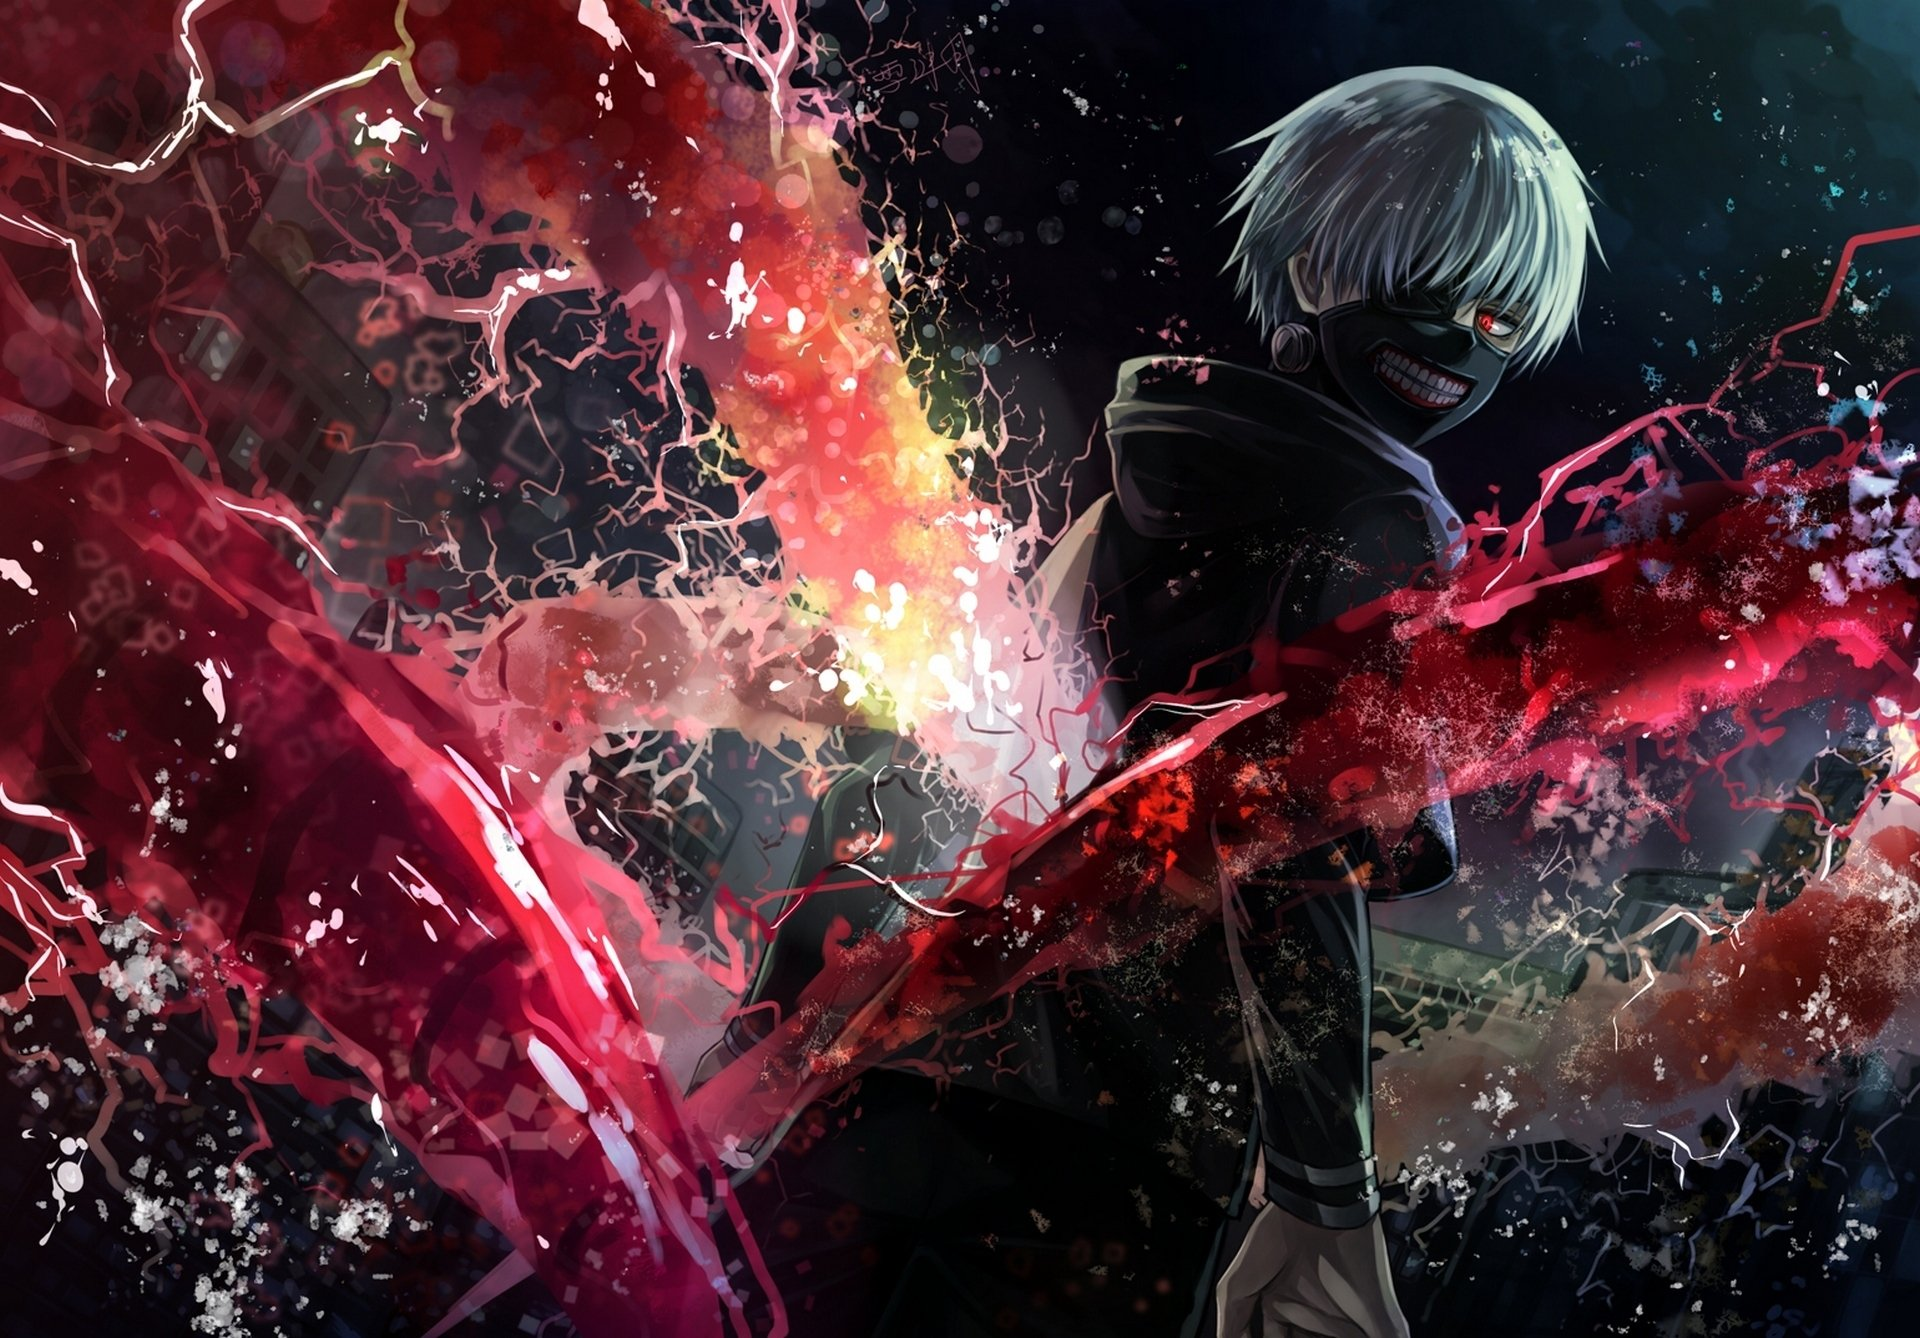 984 Tokyo Ghoul Hd Wallpapers Background Images Wallpaper Abyss